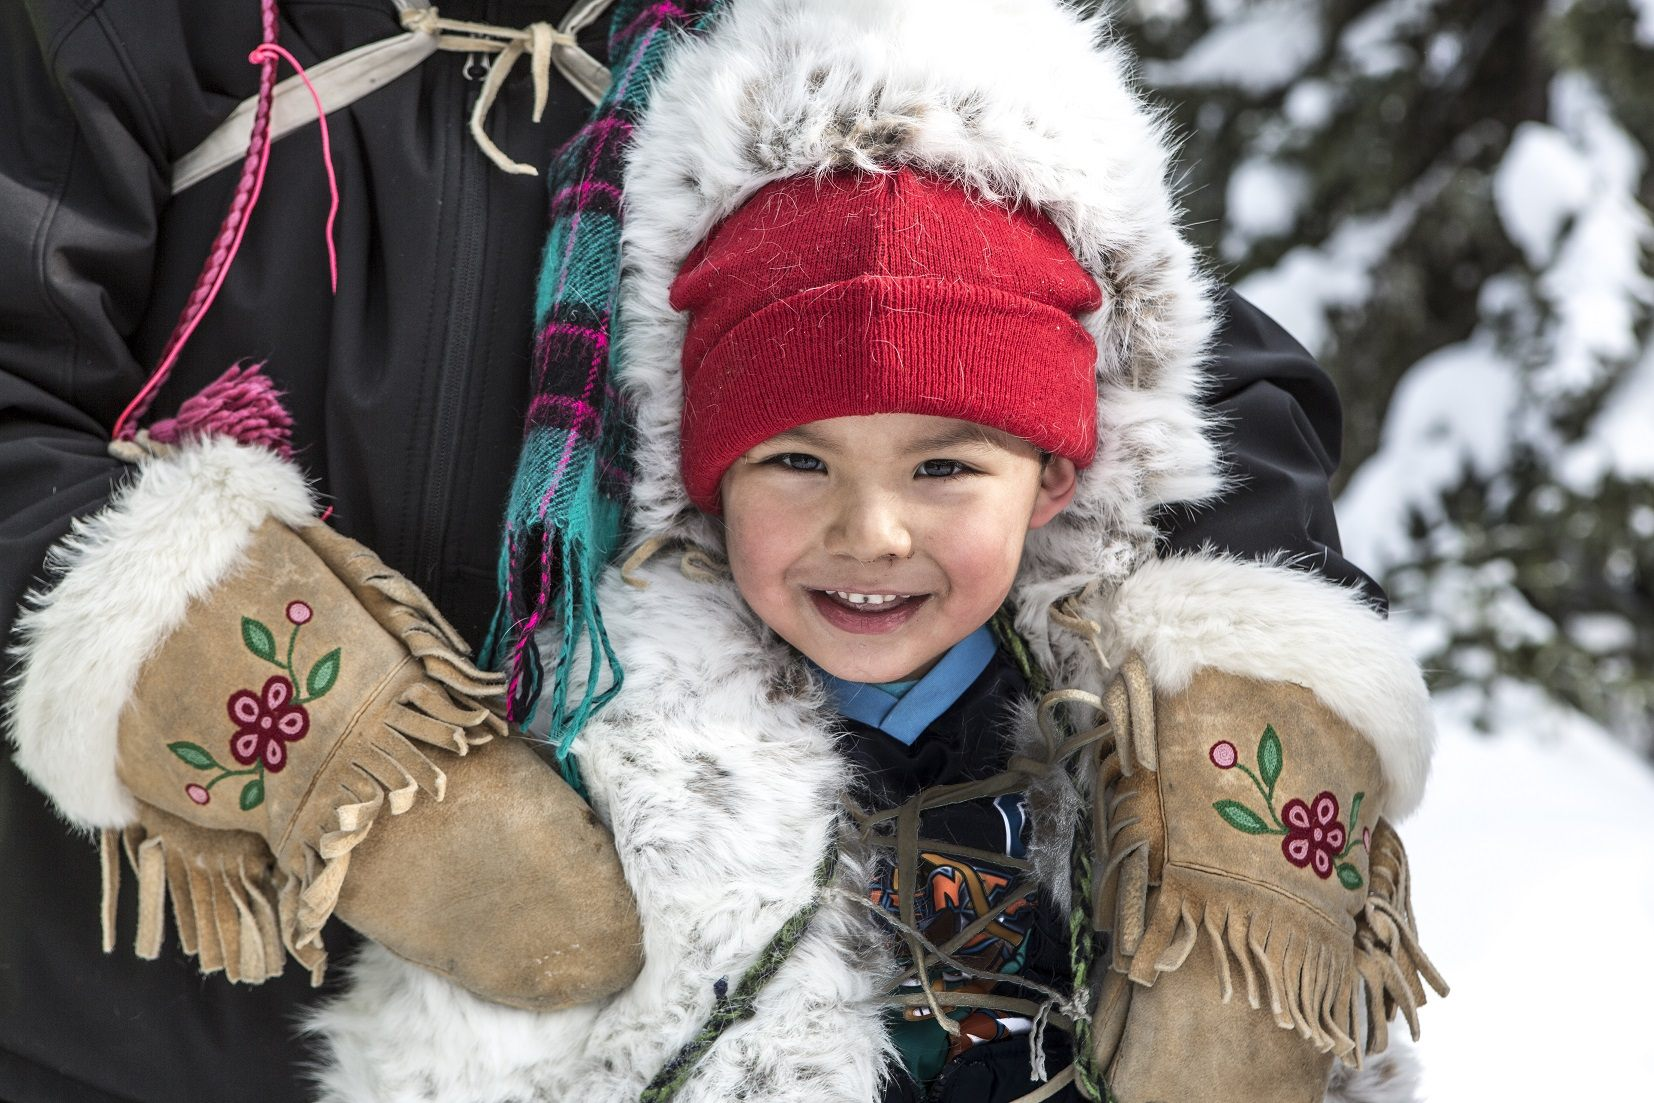 Lit Tipi Enfant Le Luxe Charm Baie James and Eeyou istchee